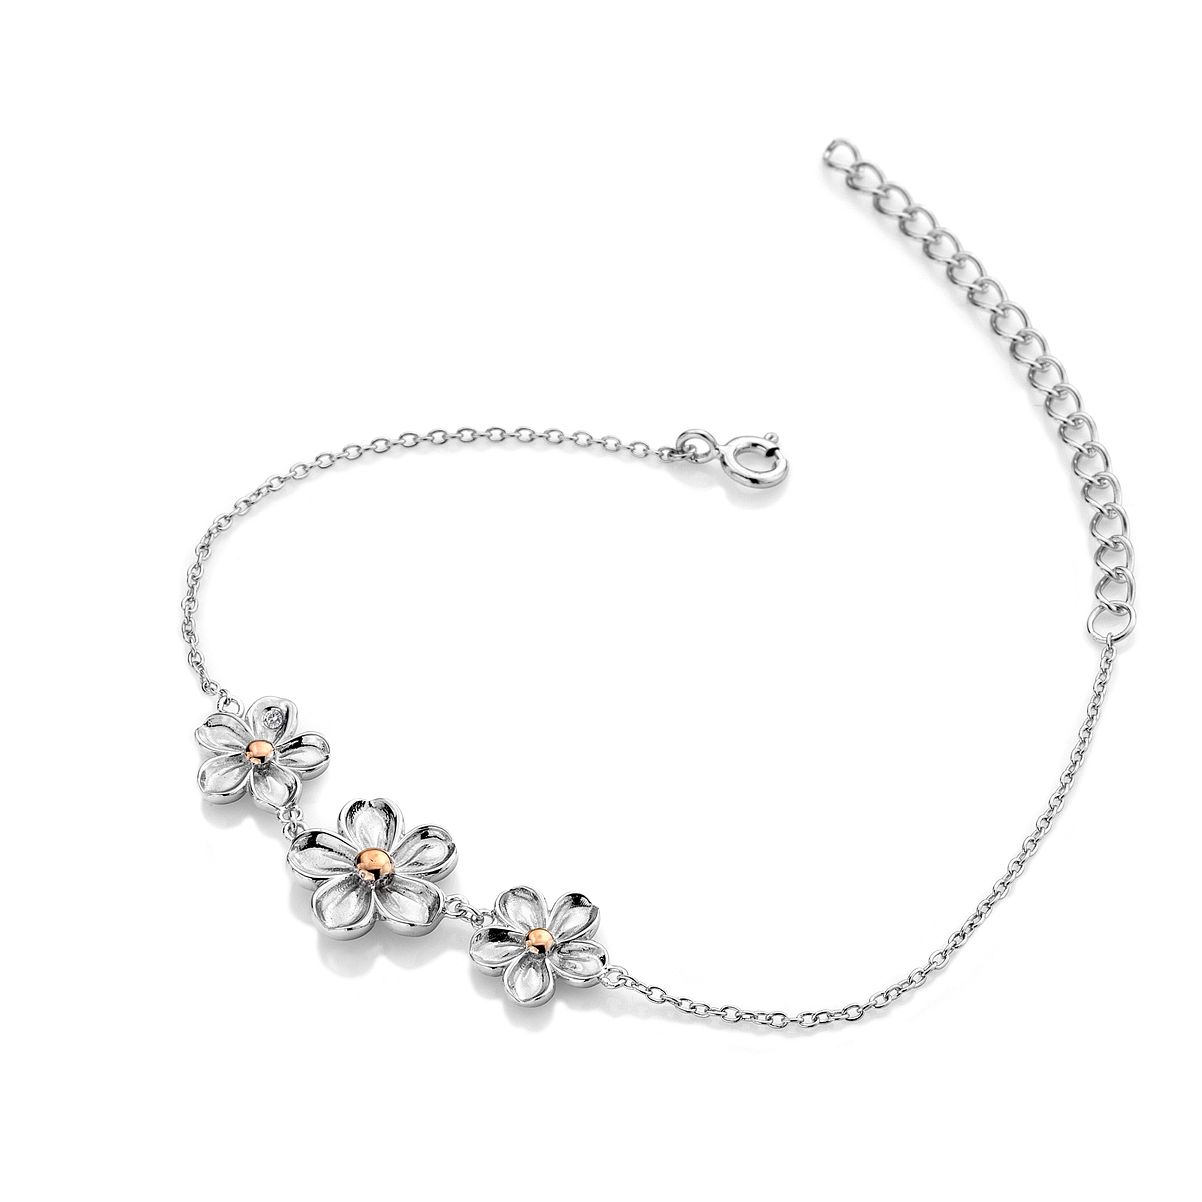 Hot Diamonds Forget Me Not Silver Bracelet - Product number 5132835